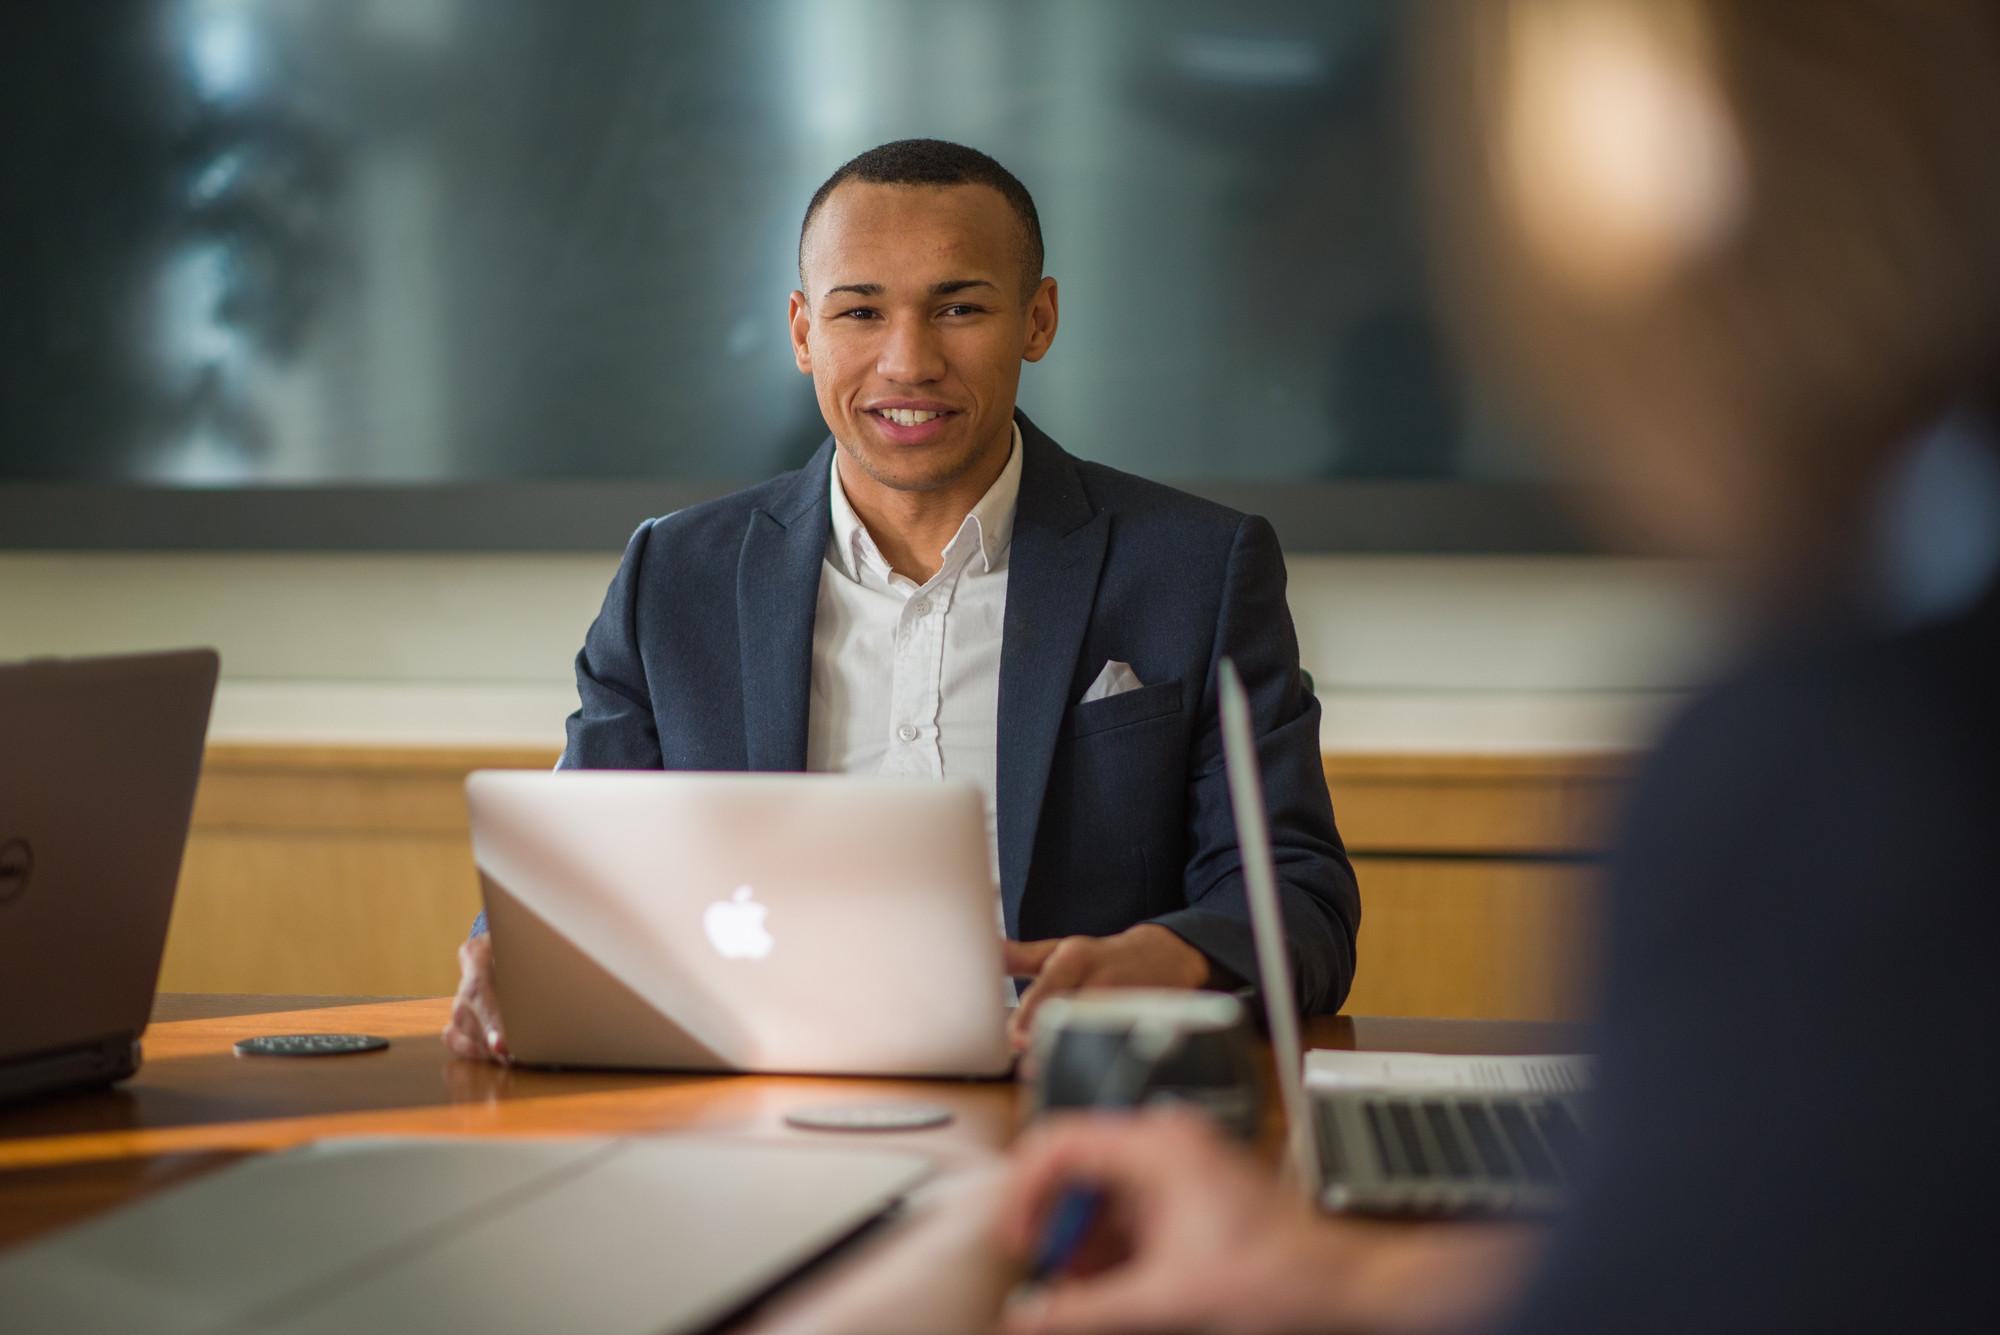 UNH Full-time MBA student Dante Lamb works at conference table with laptop